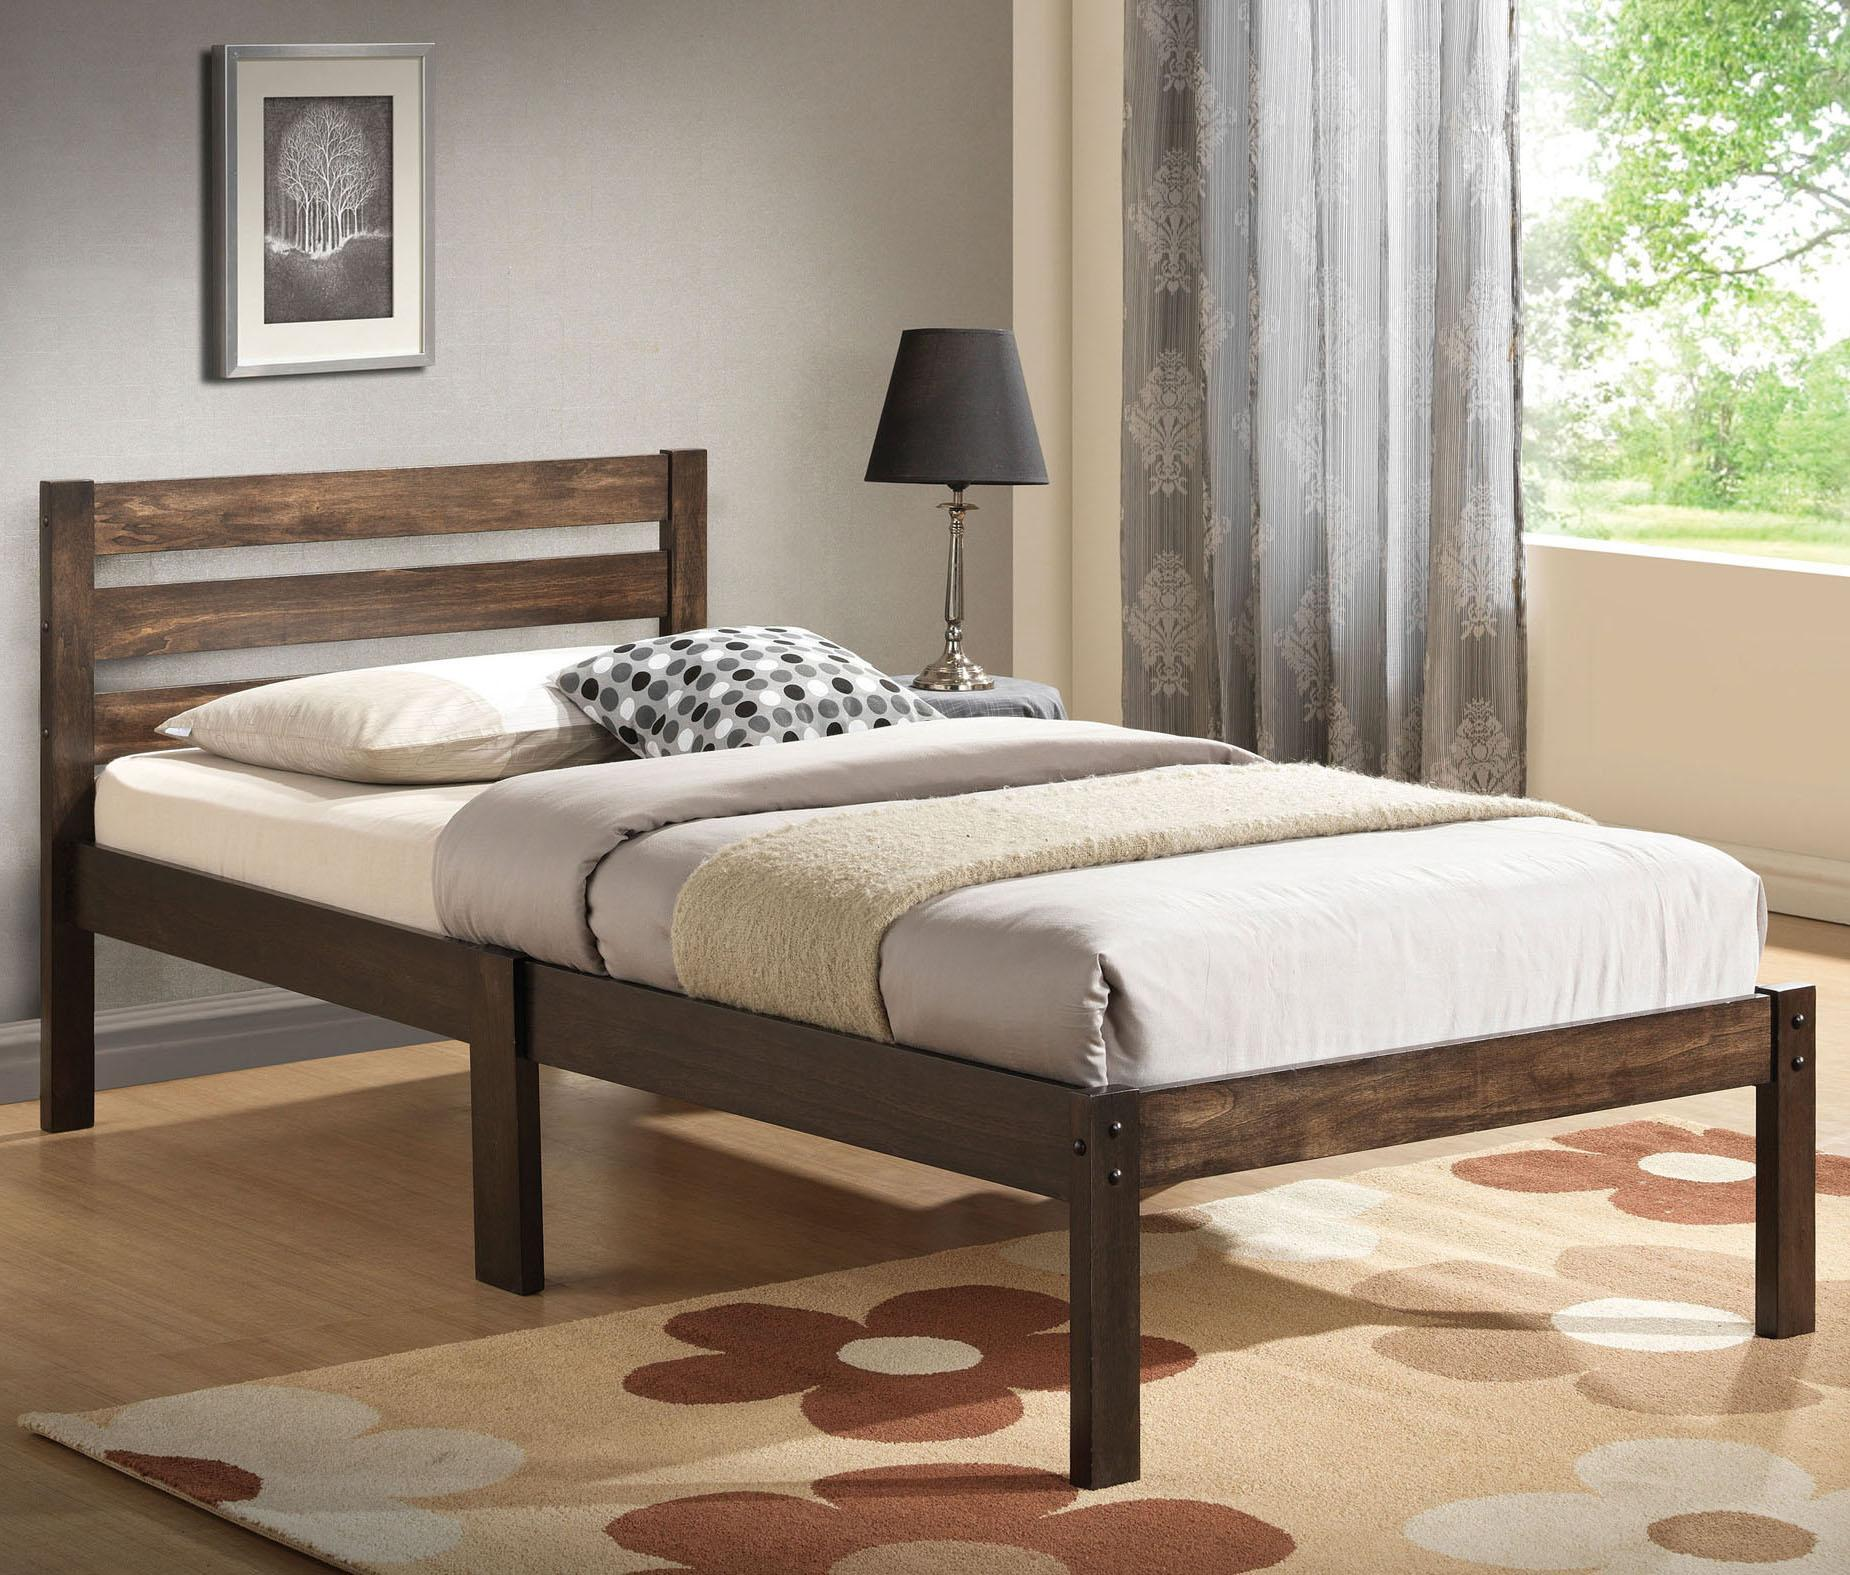 Acme Furniture Donato Twin Bed - Item Number: 21520T